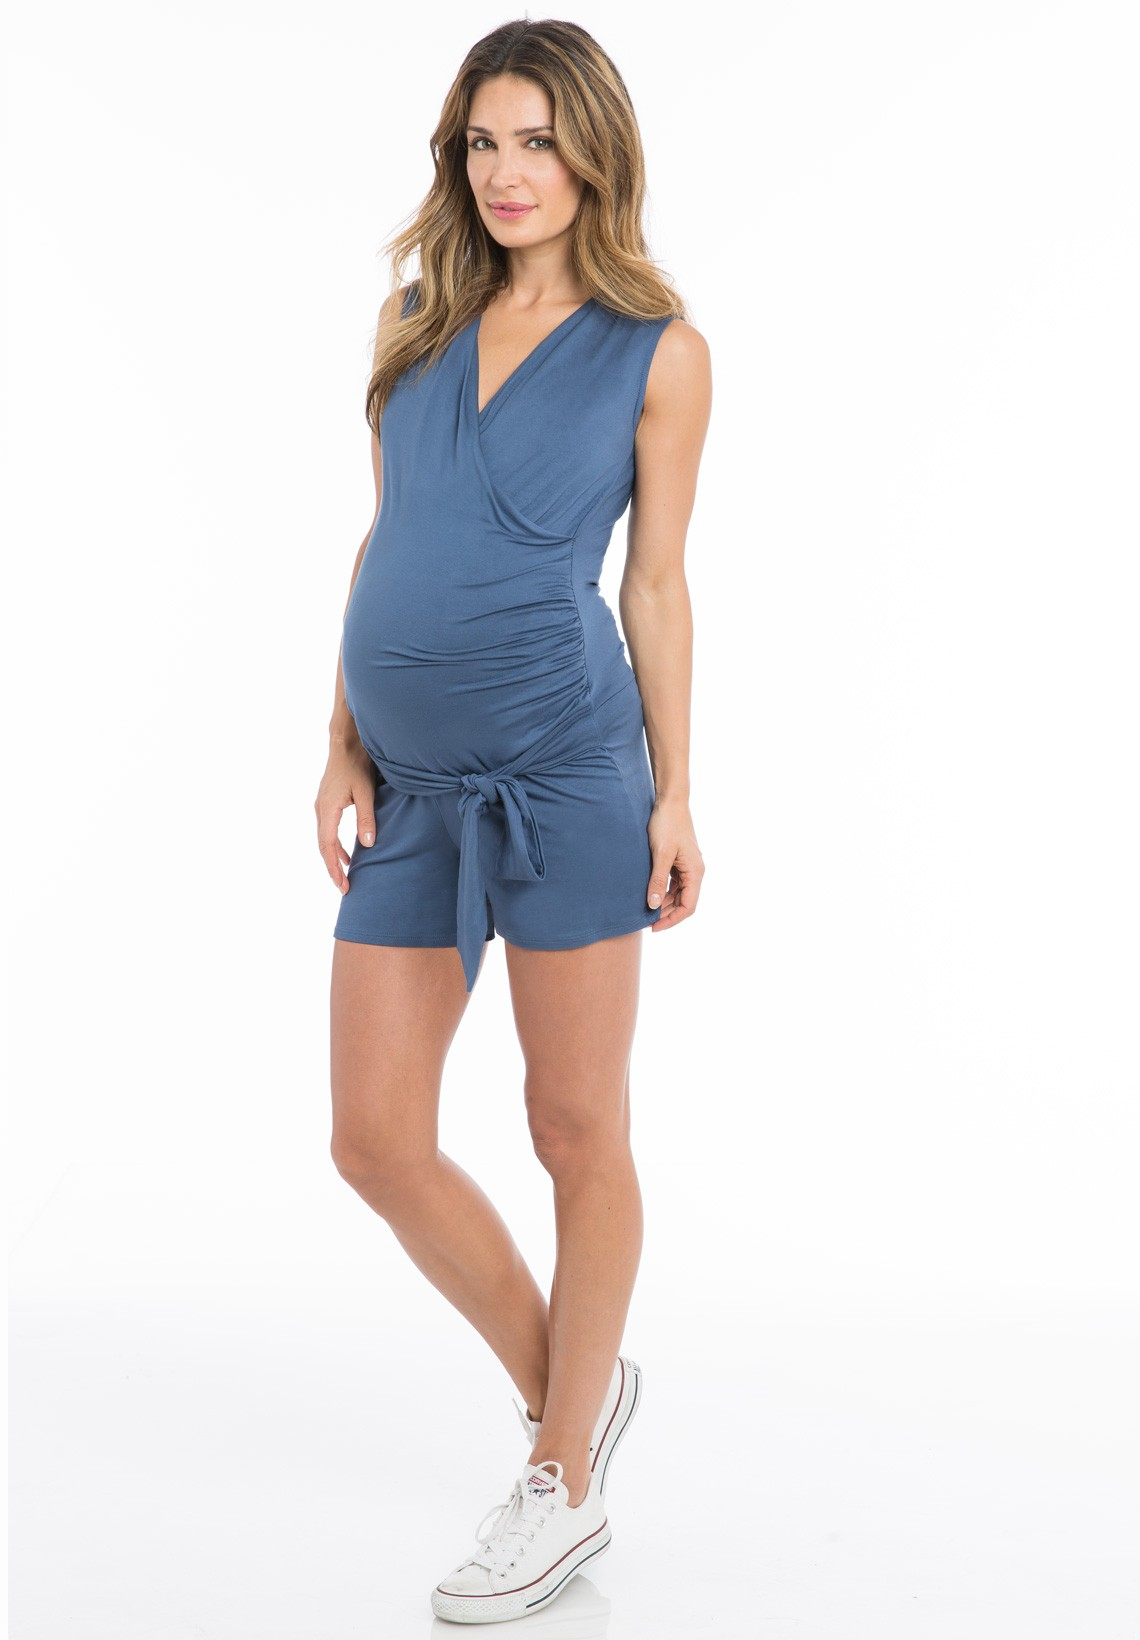 Free shipping and returns on Rompers & Jumpsuits Maternity Clothing at specialtysports.ga